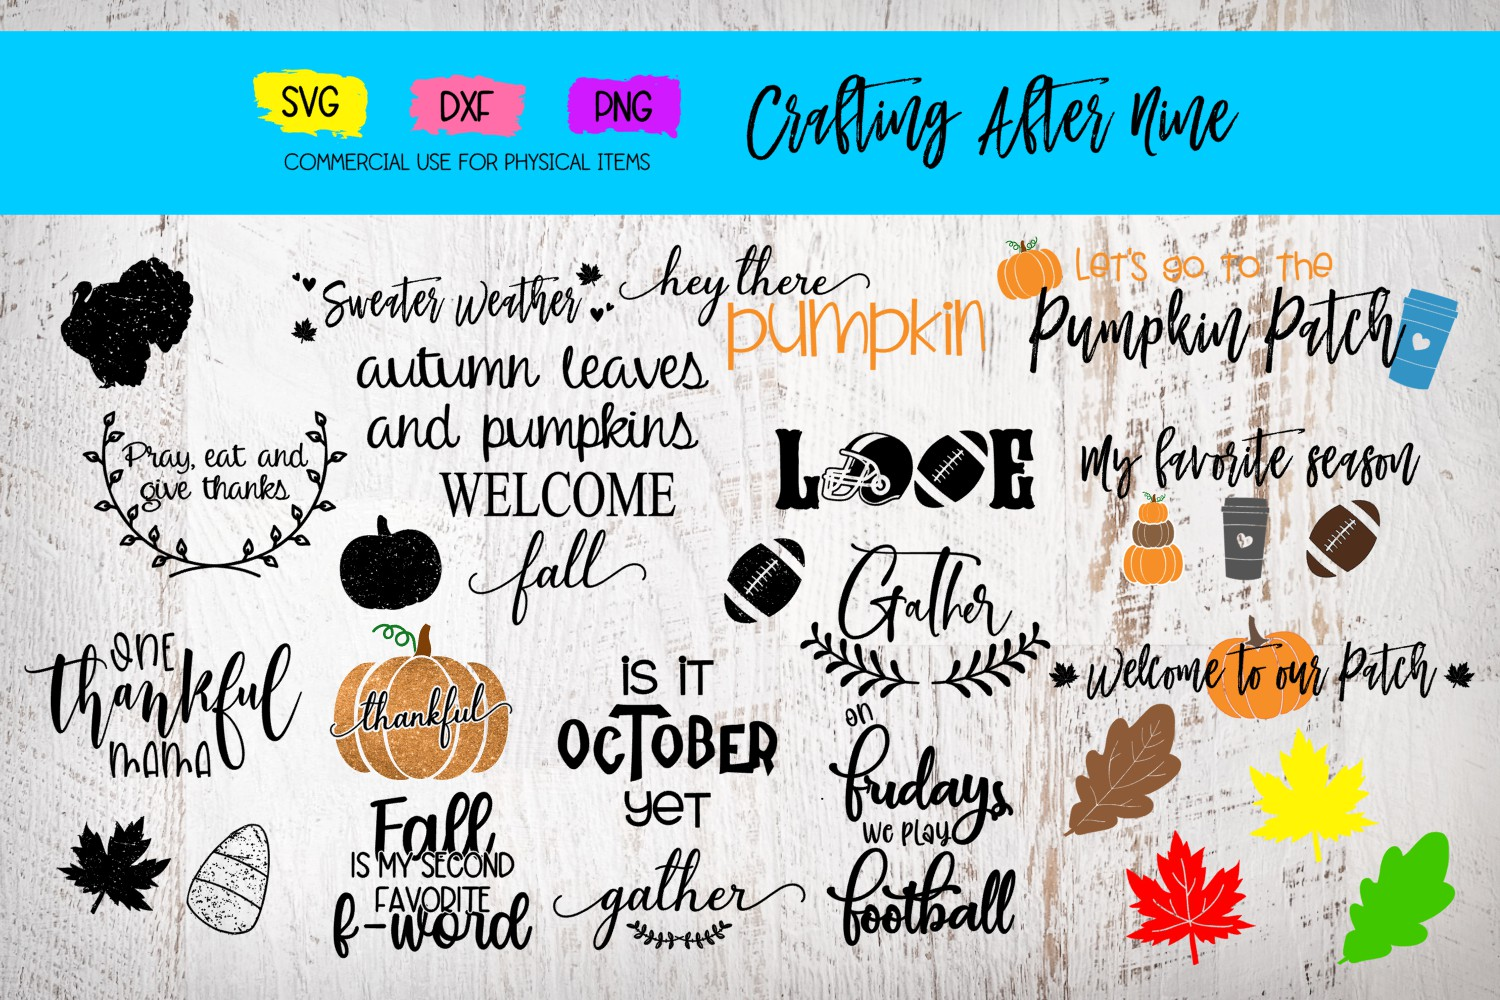 Download Free Fall Bundle Pumpkin Patch 20 Designs Graphic By Crafting After for Cricut Explore, Silhouette and other cutting machines.